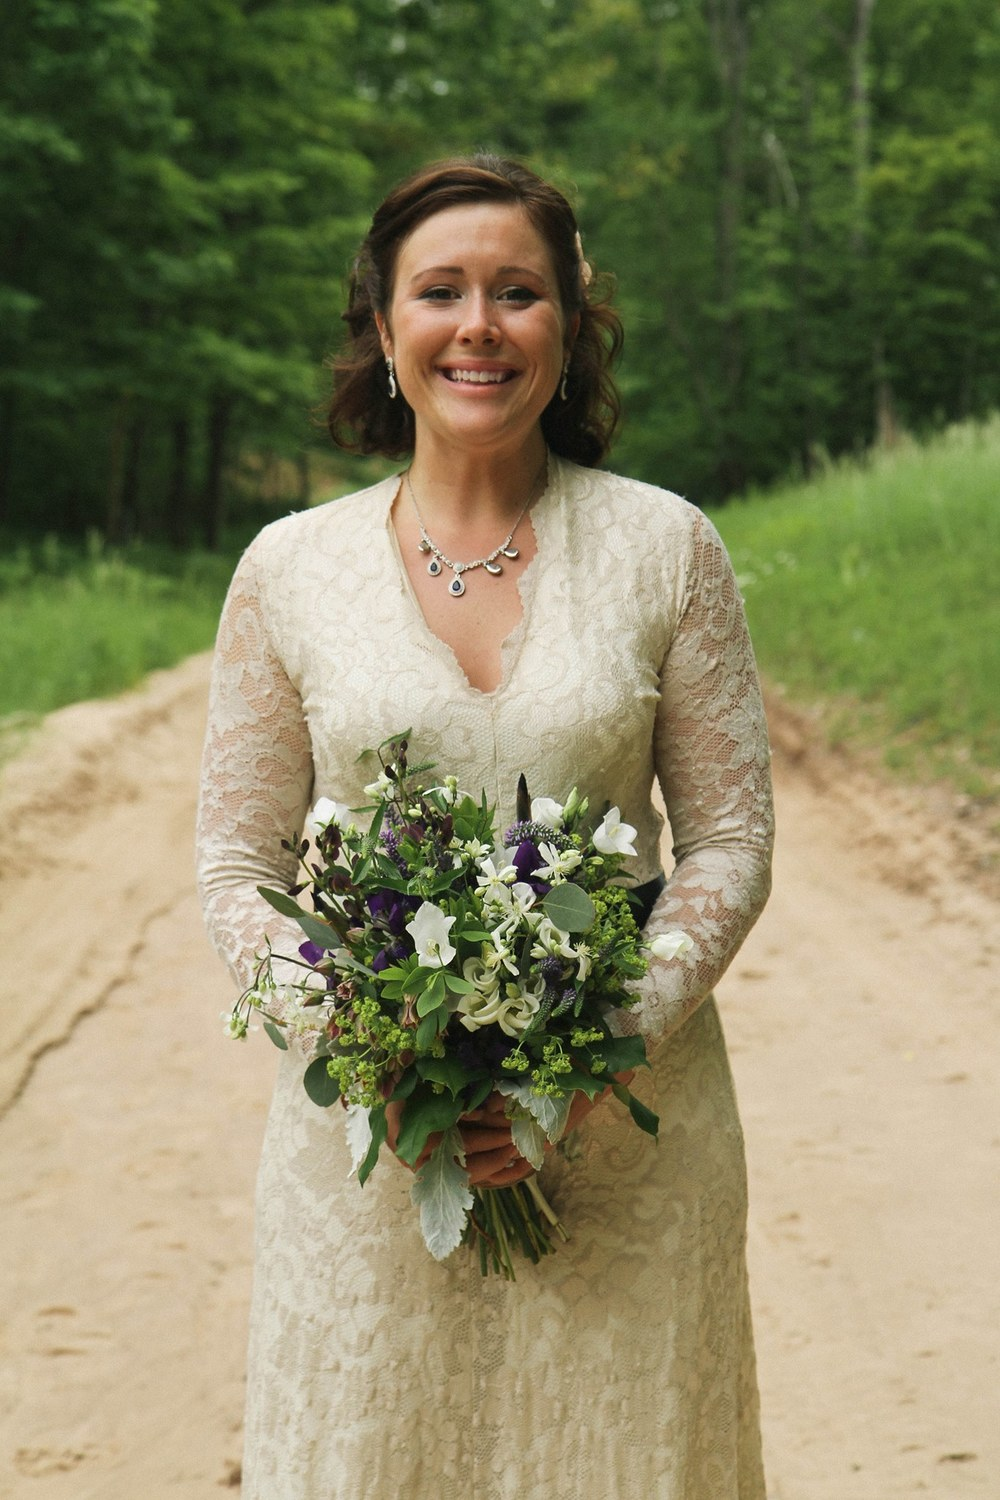 Caberfae, MI Outdoor Bridal Photos with Bridal Bouquet